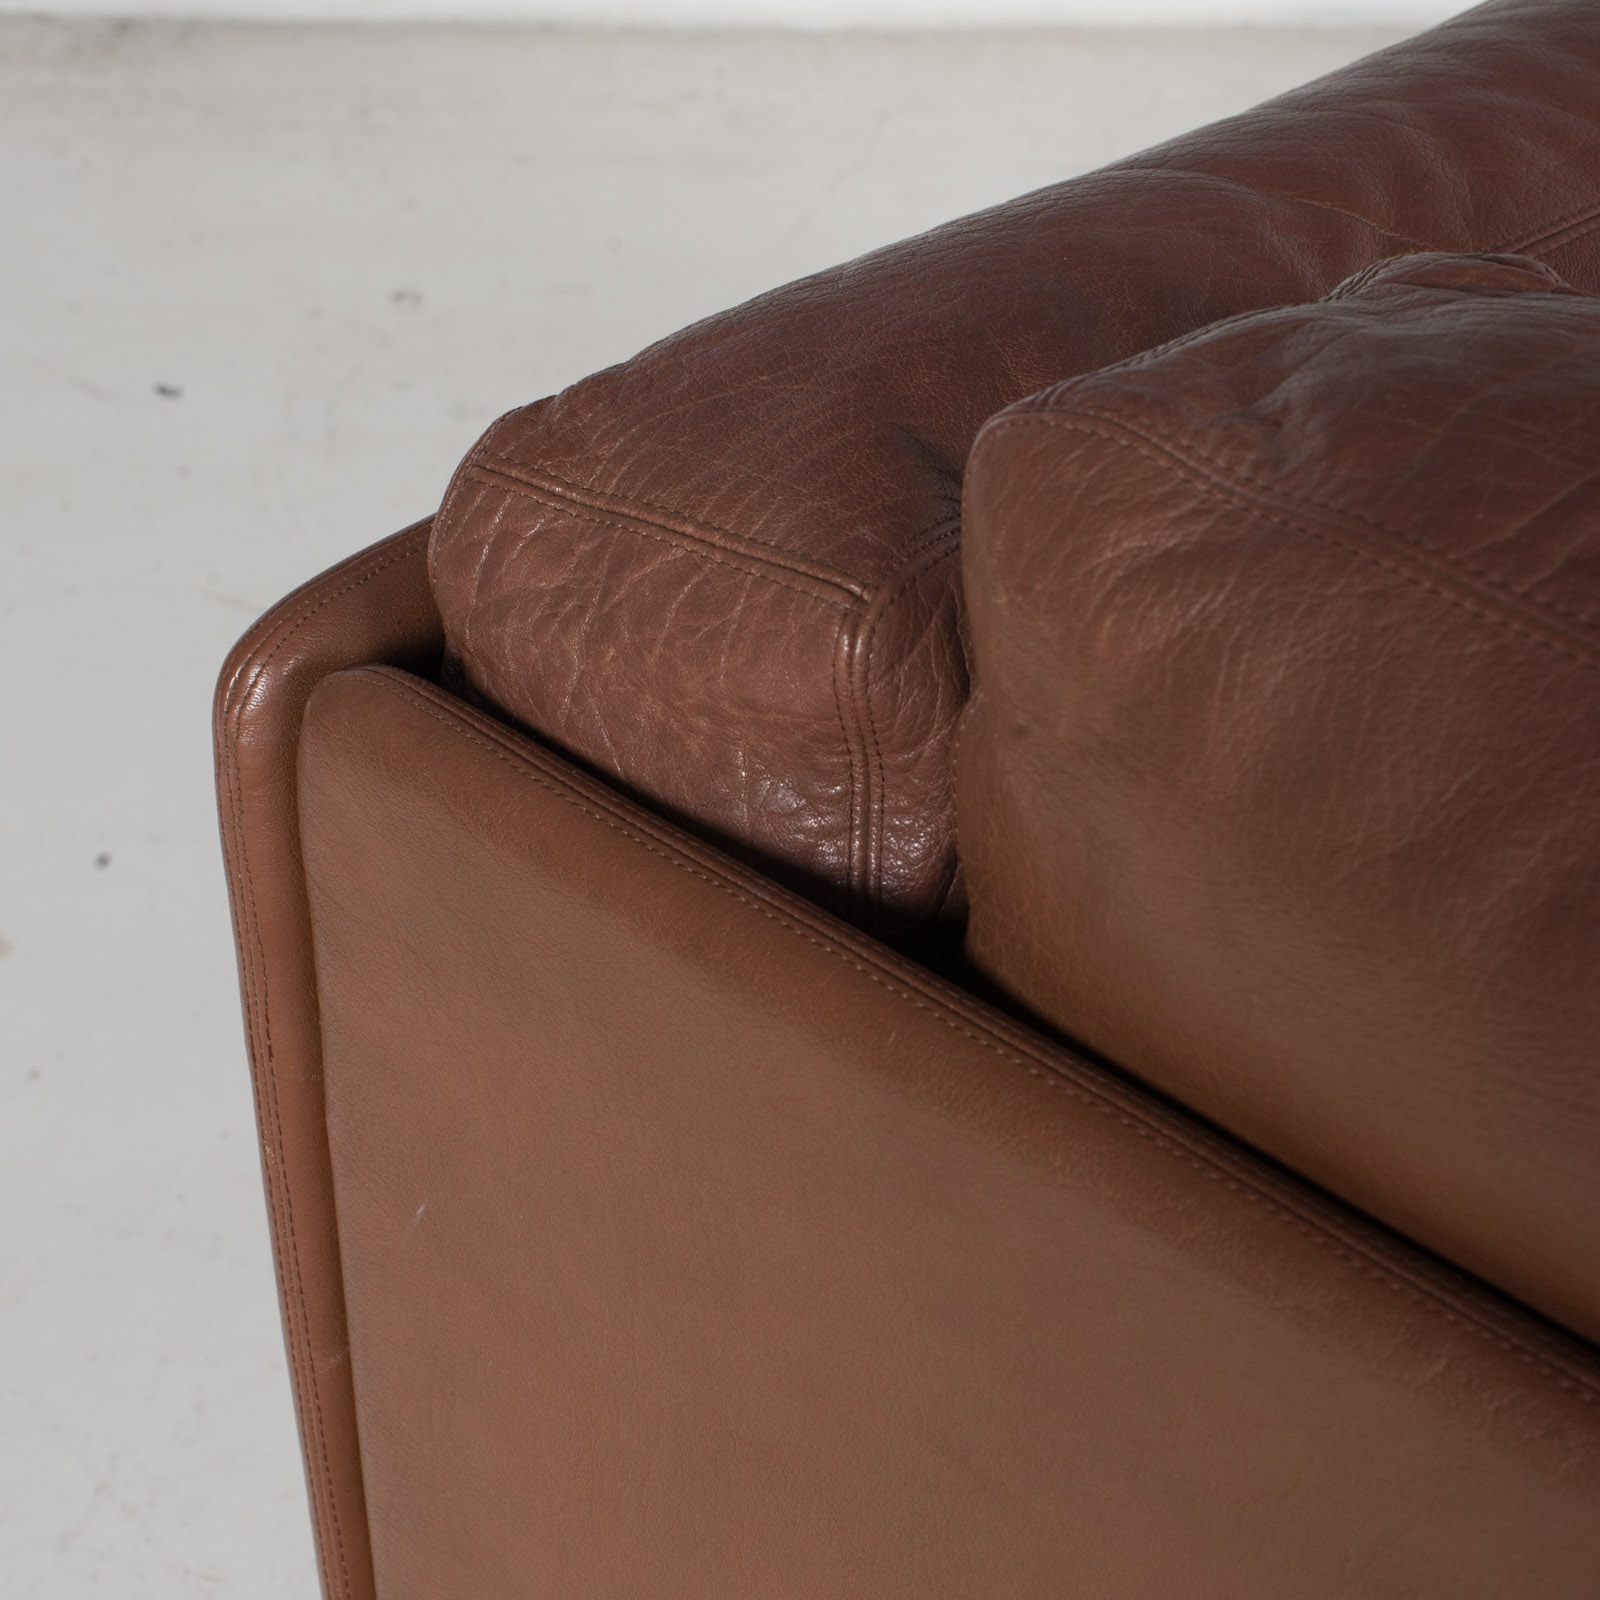 2 Seater Sofa In Brown Leather, 1960s, Switzerland 13